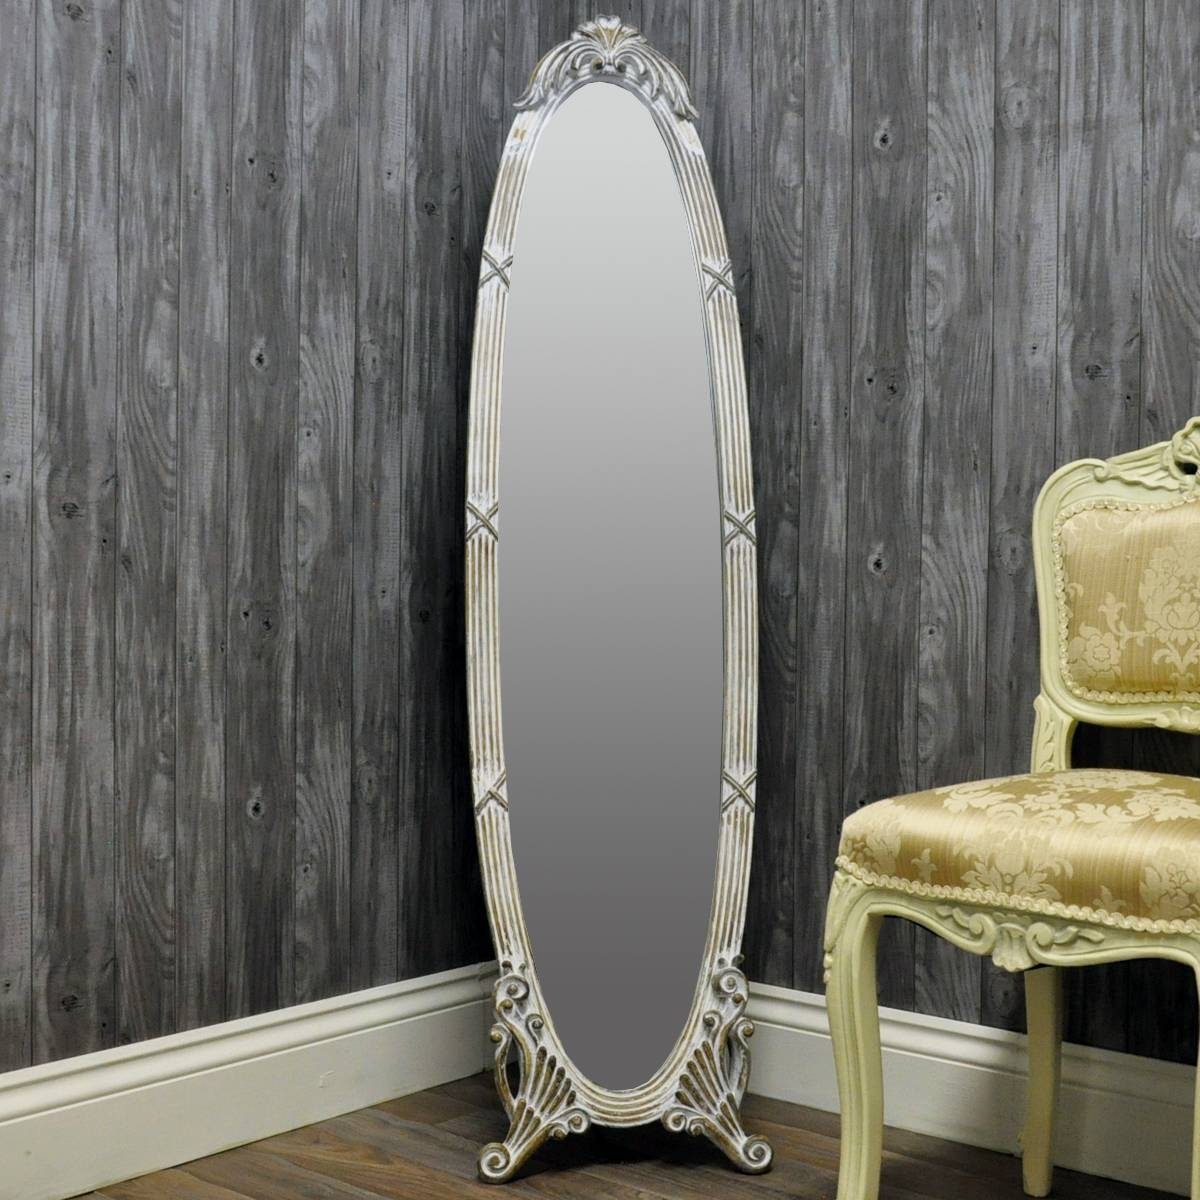 Choose From A Range Of Full Length Cheval Mirrors within Full Length Cheval Mirrors (Image 9 of 25)